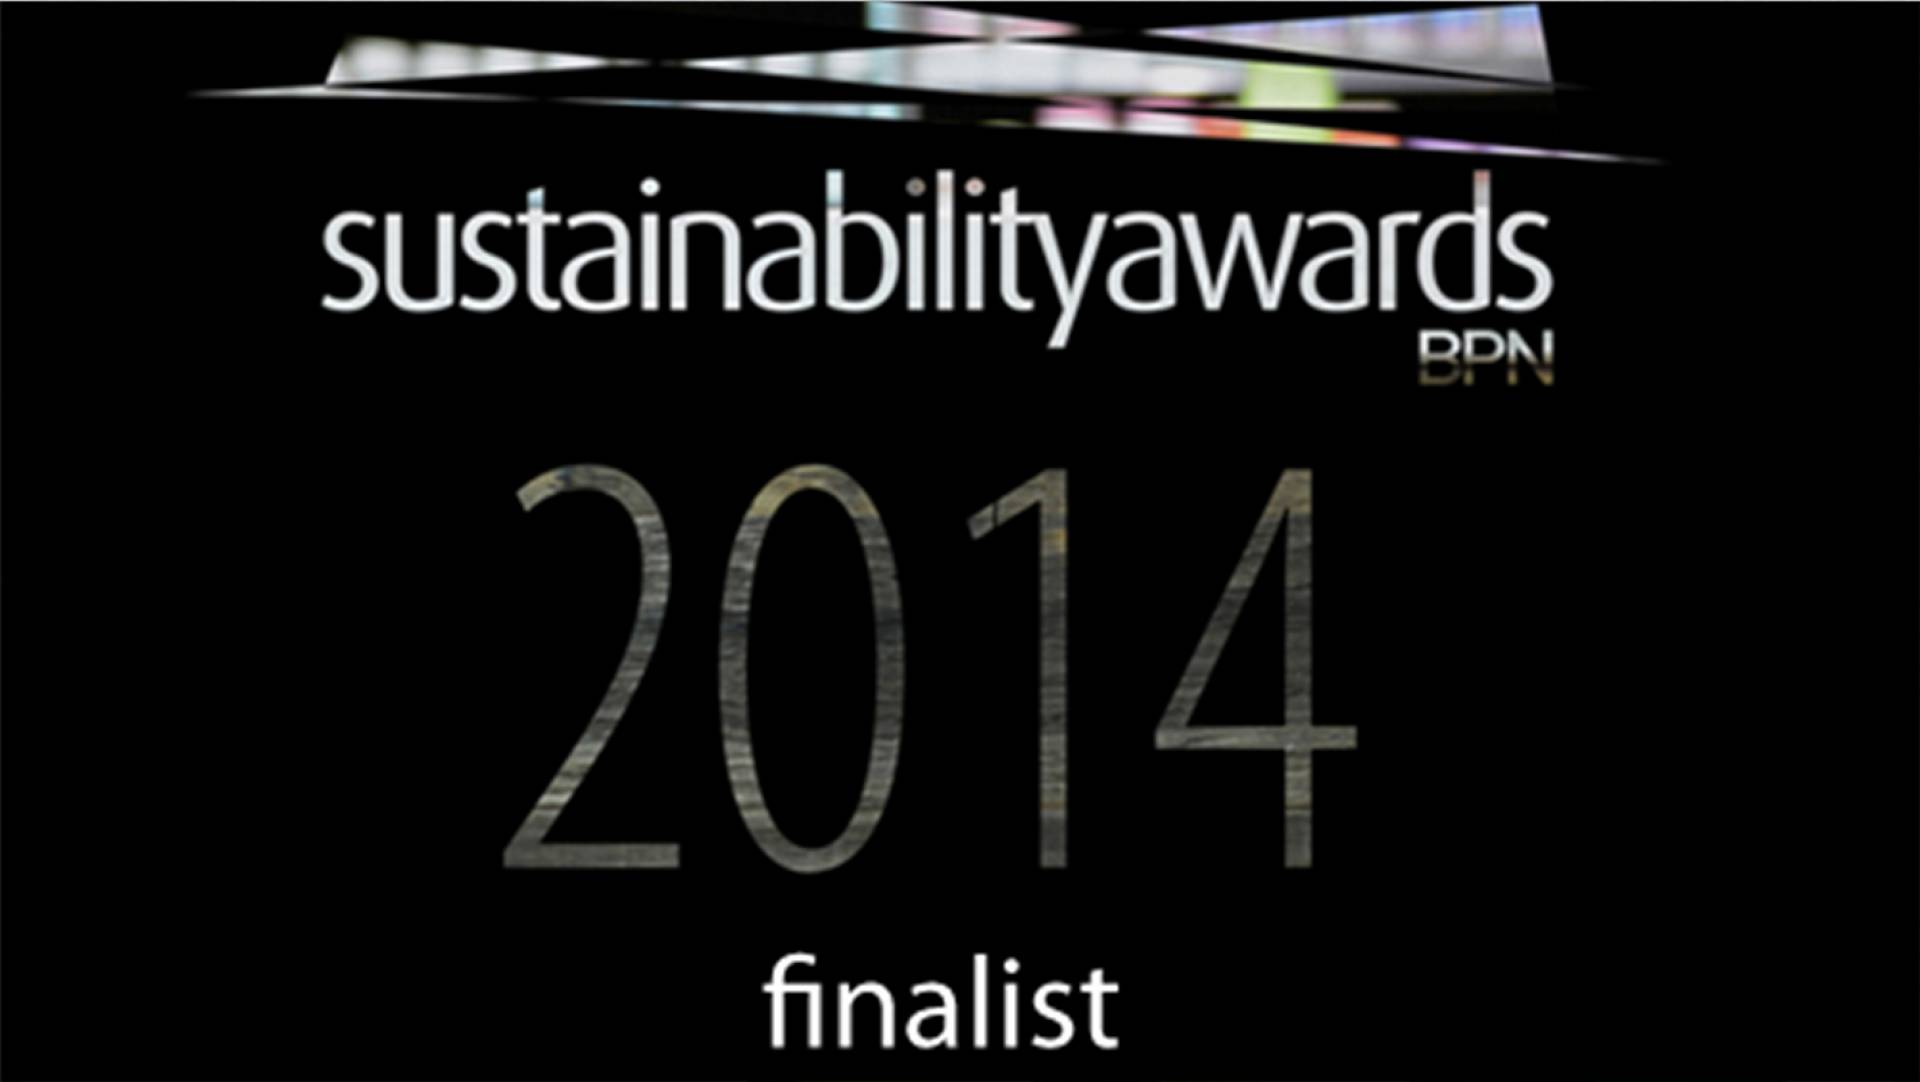 BPN Sustainablity Awards